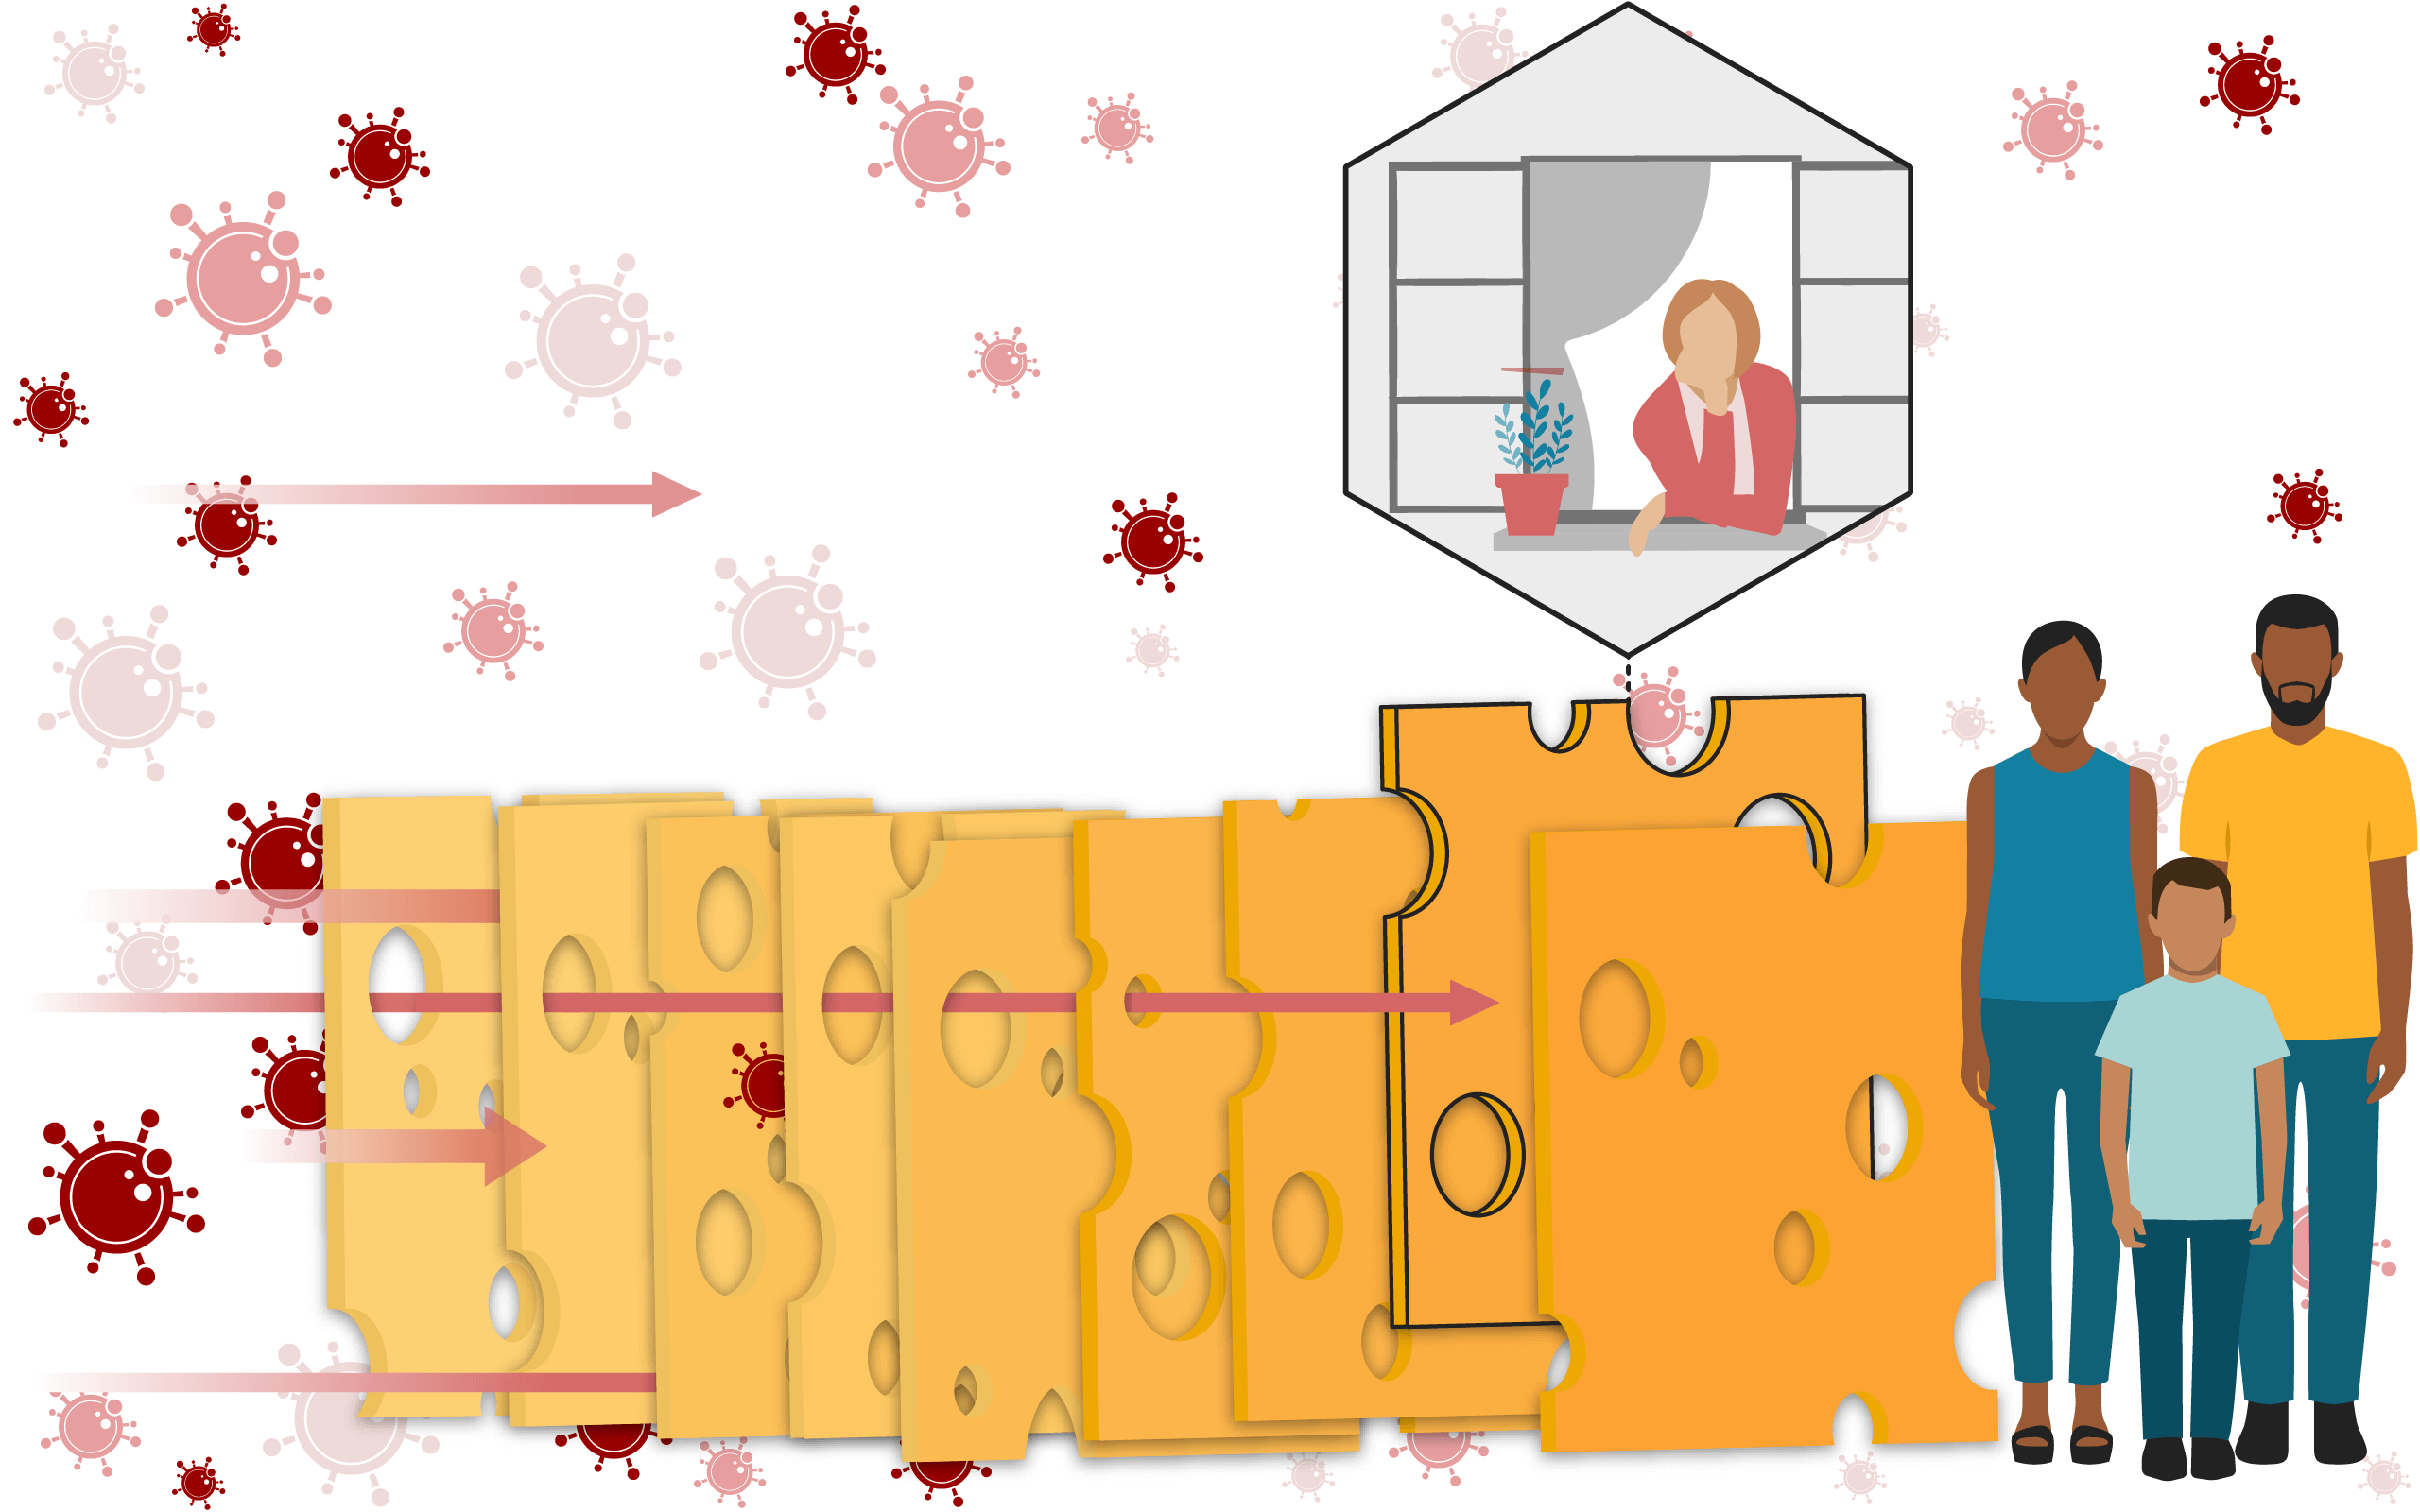 Illustration of a Swiss cheese, with a slice highlighted, representing opening windows